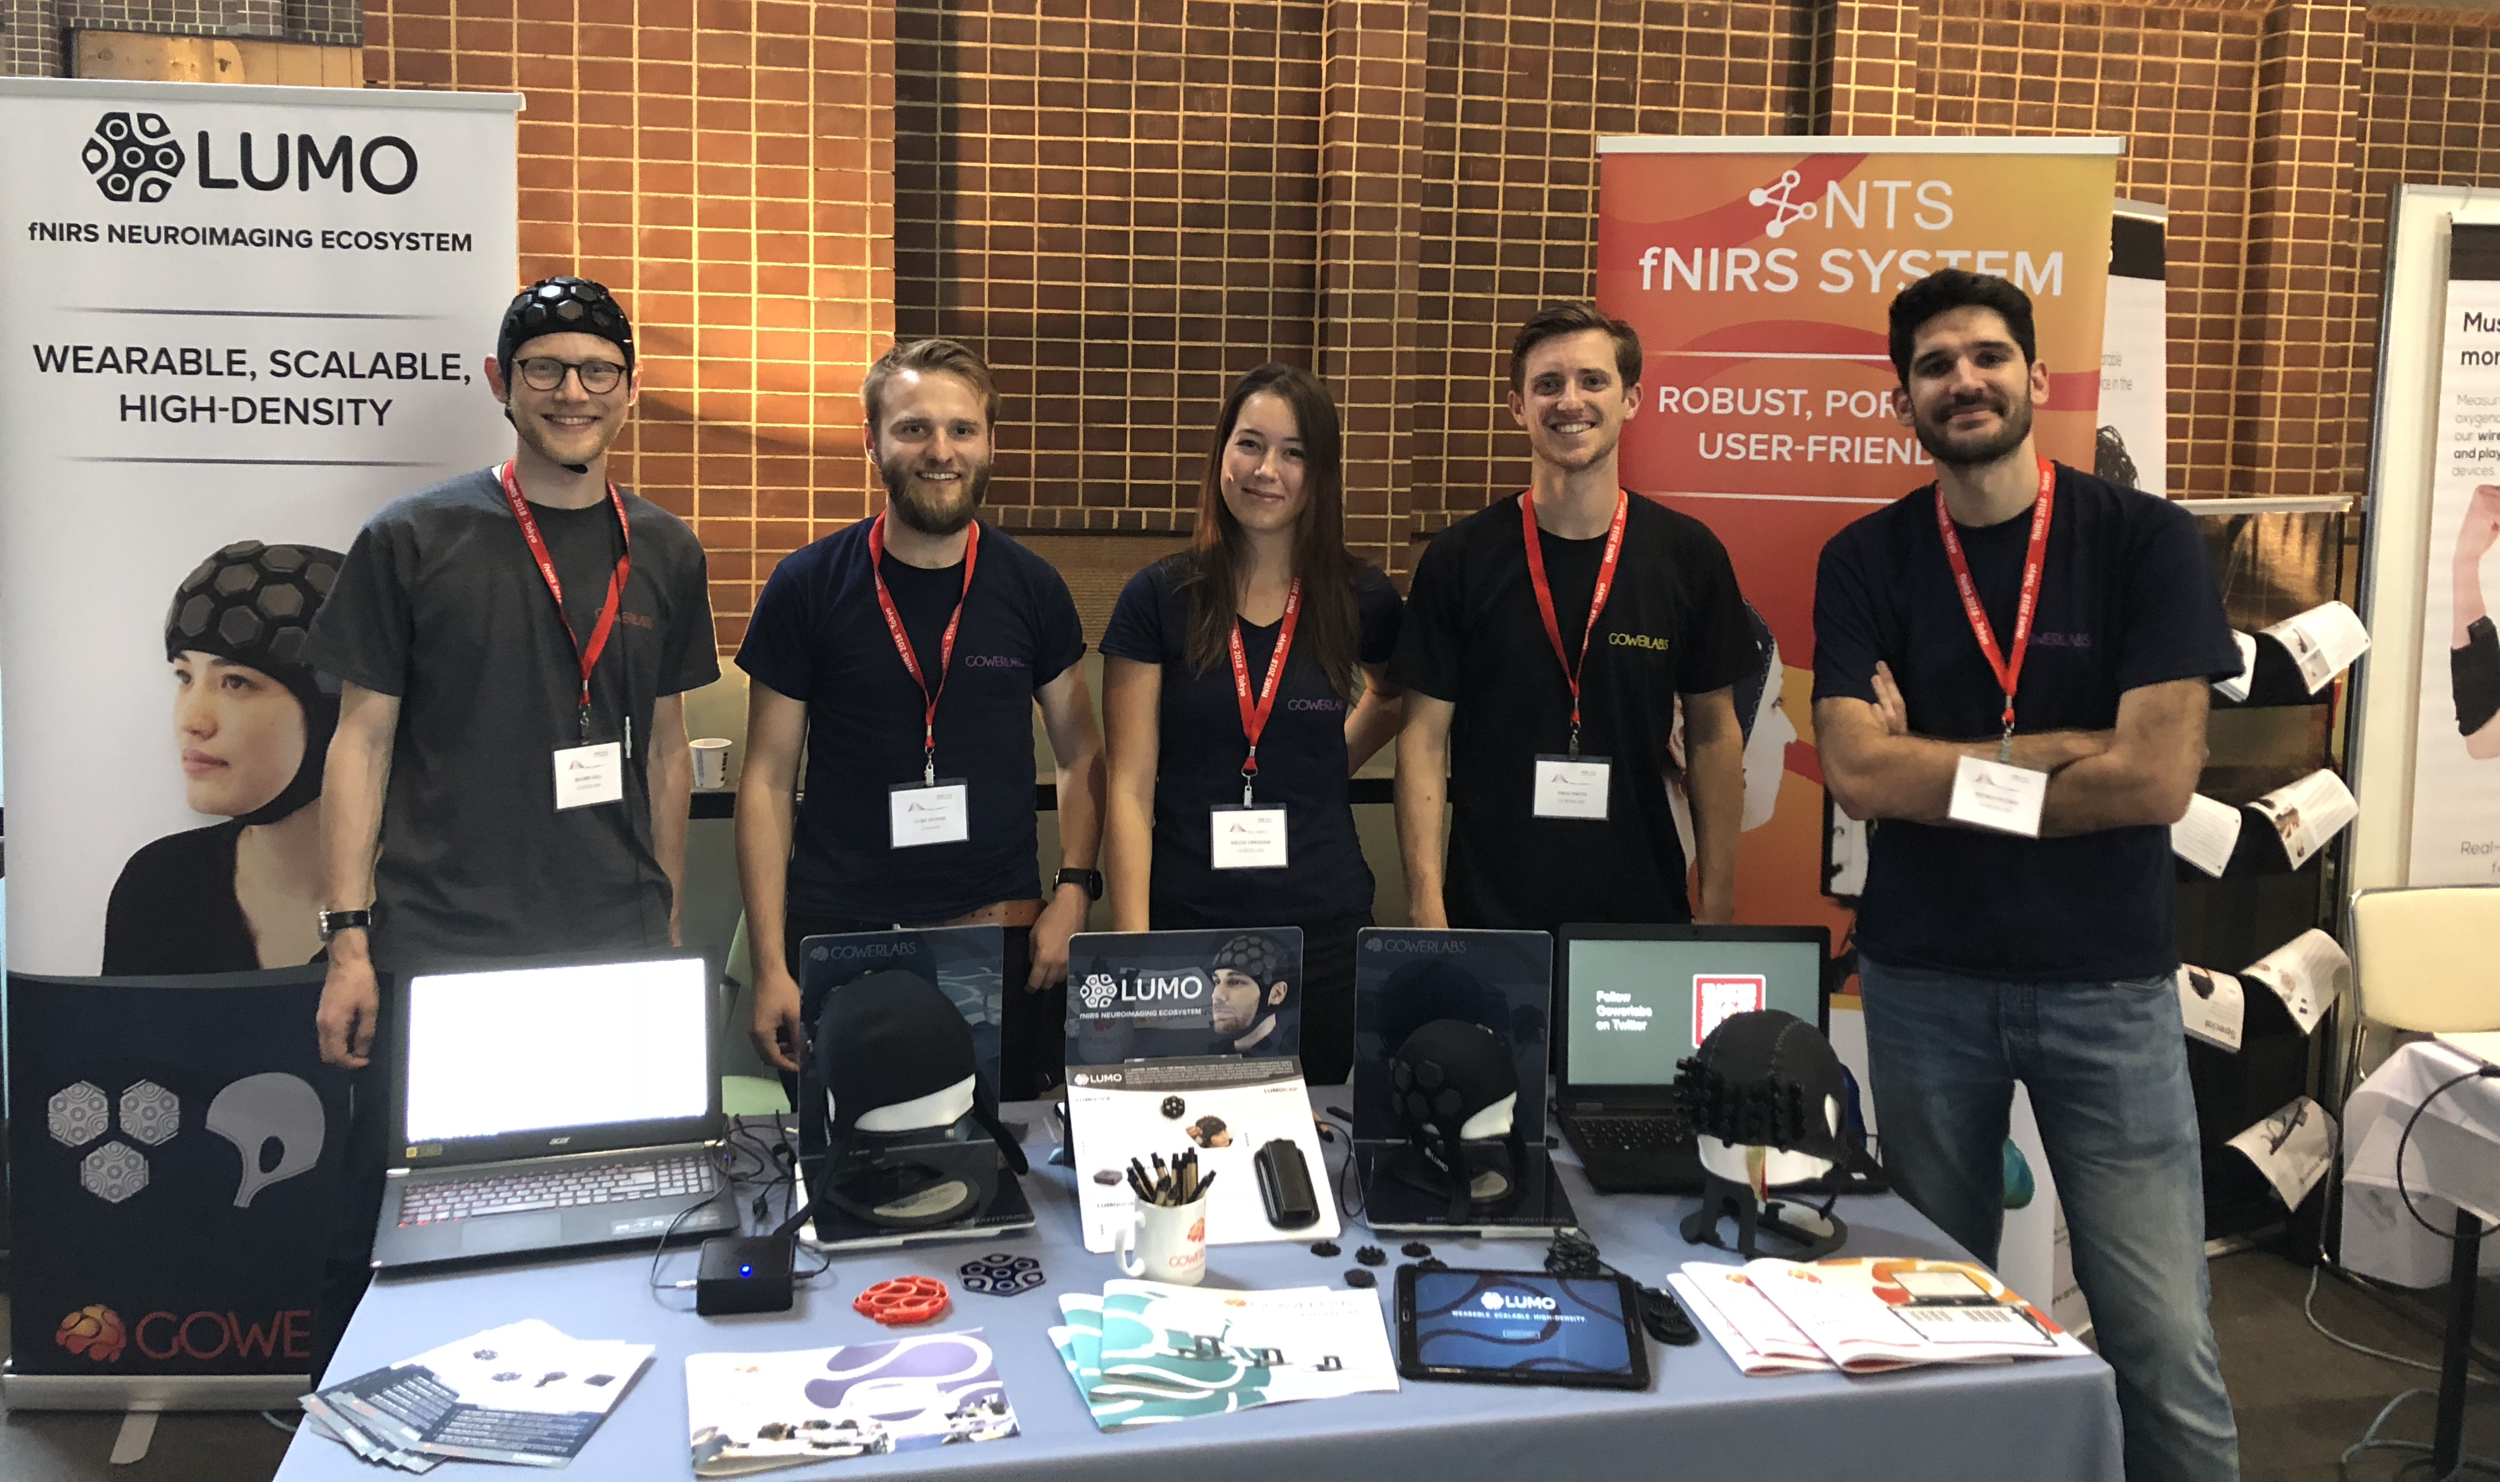 Gowerlabs were platinum sponsors of the 2018 fNIRS conference in Tokyo, Japan